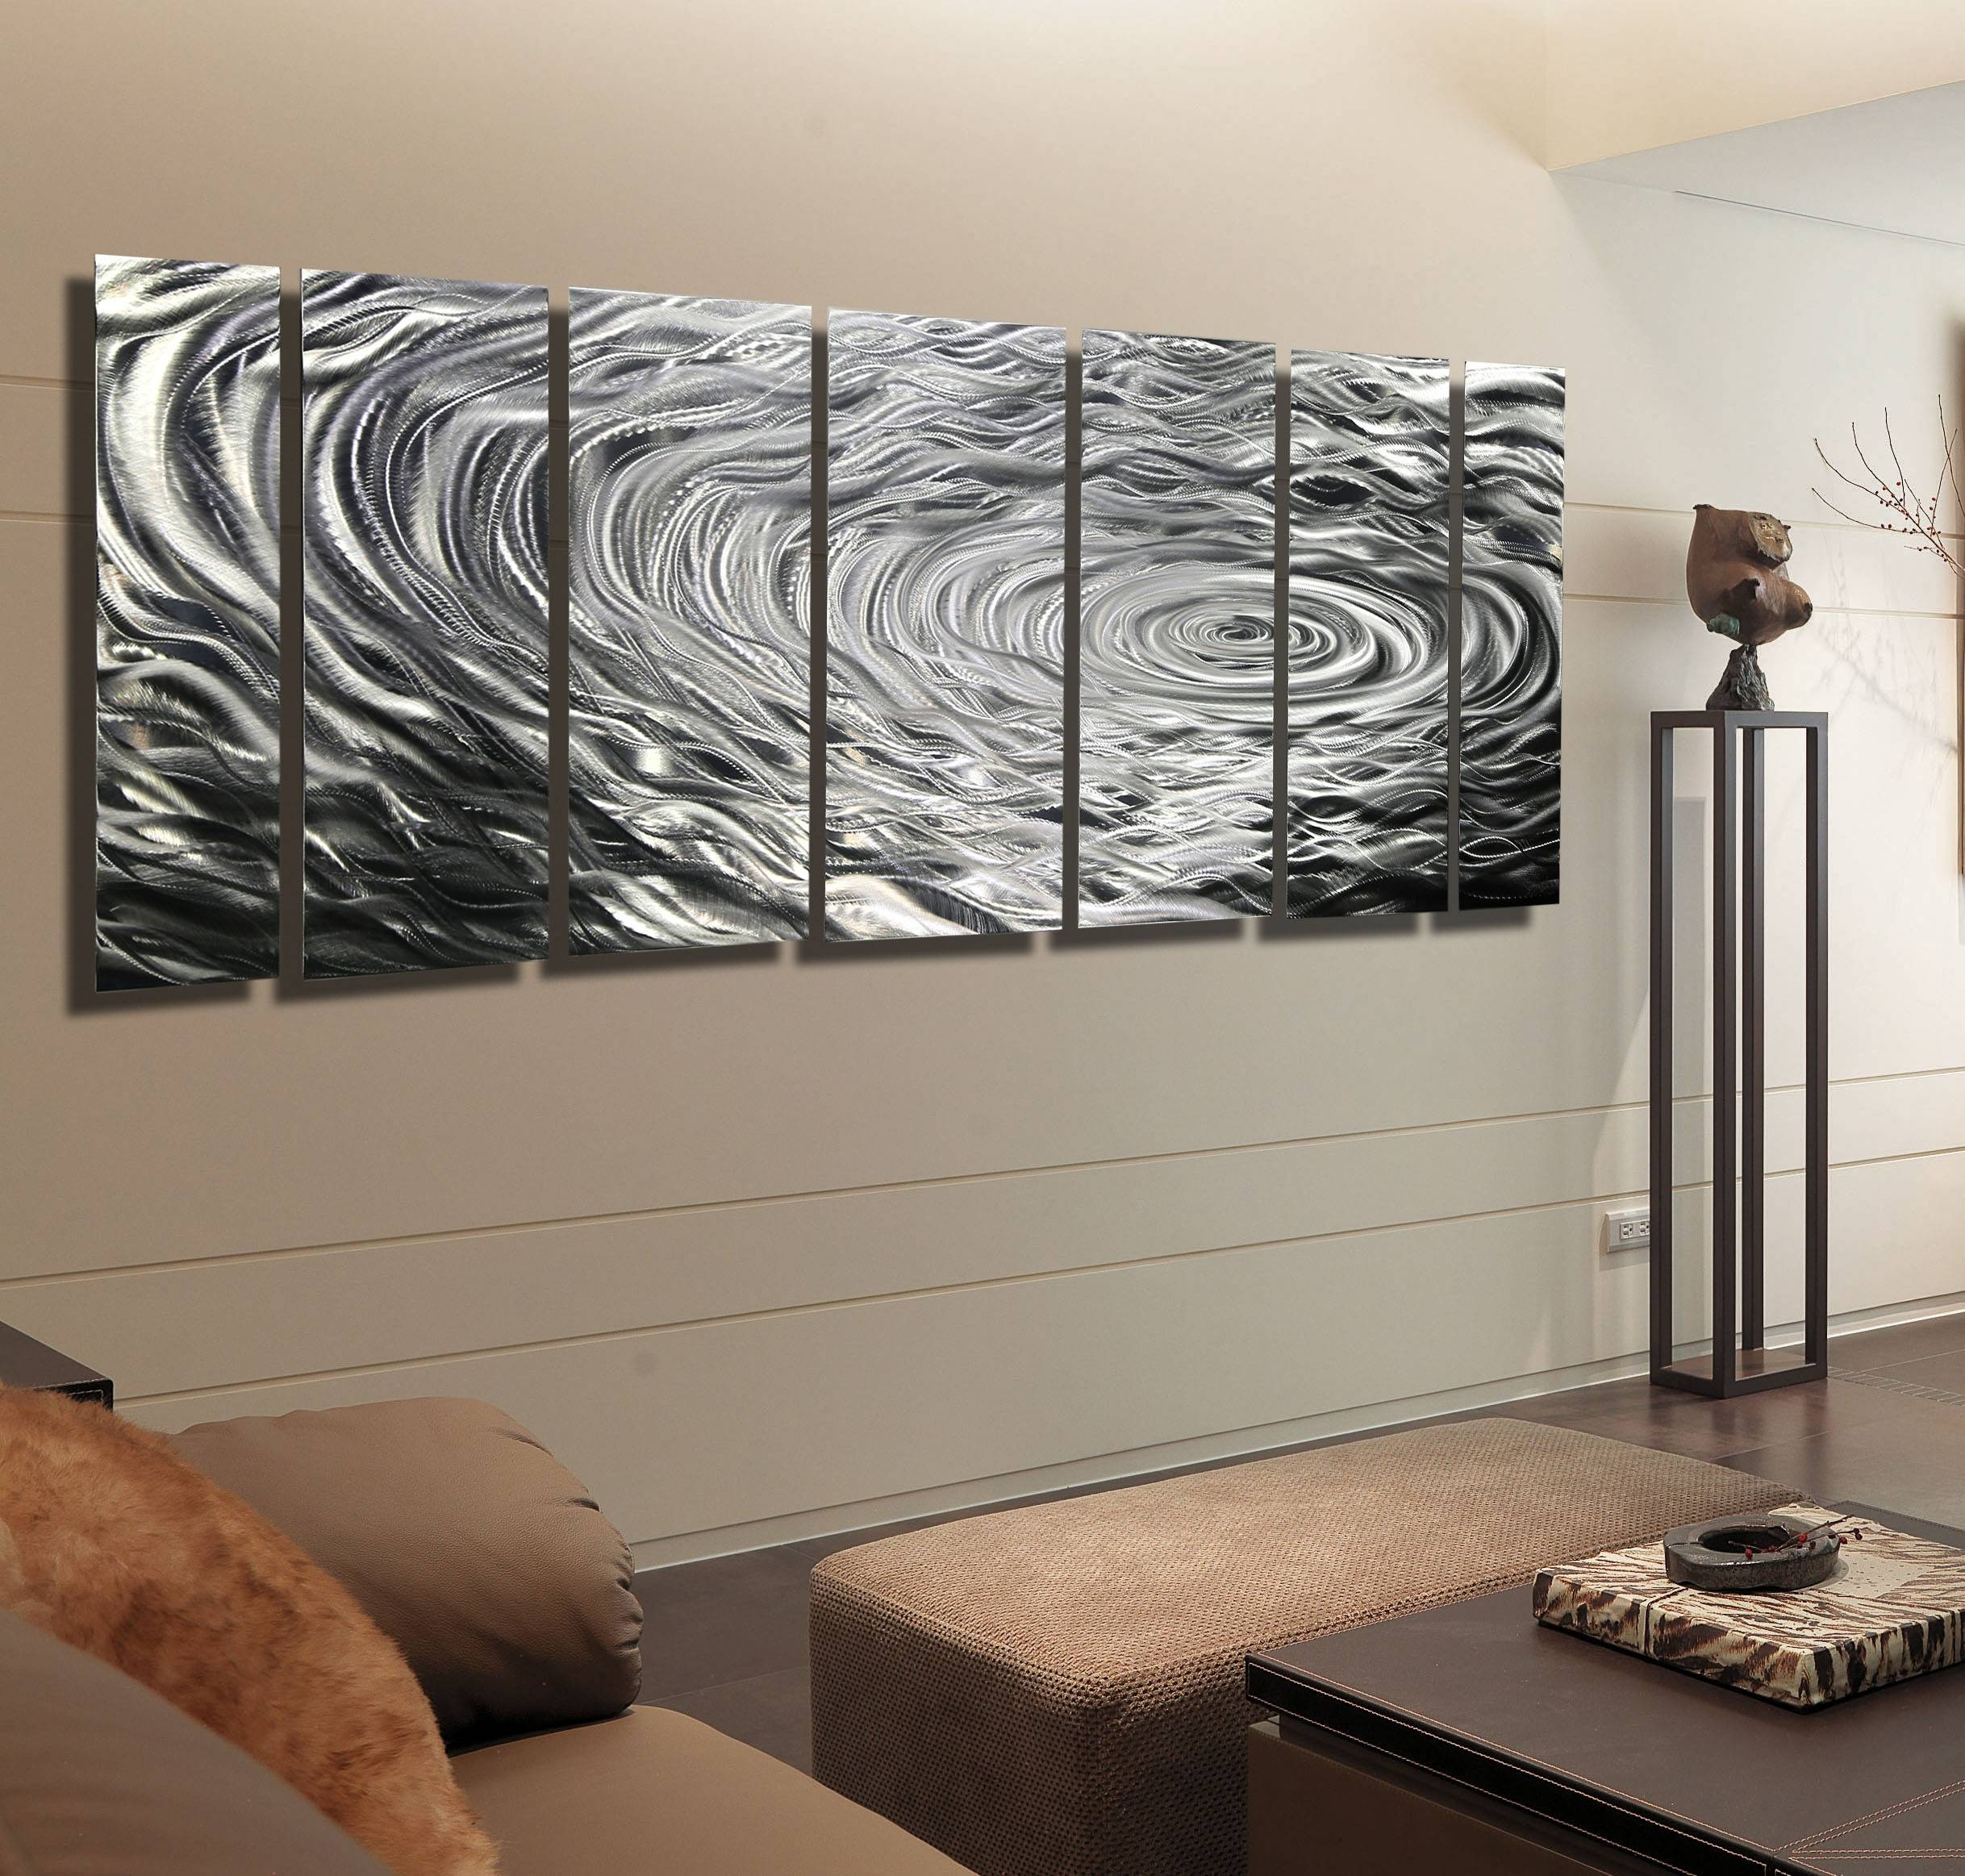 Ripple Effect Xl – Silver Abstract Corporate Metal Wall Art Decor In Best And Newest Modern Metal Wall Art (View 7 of 20)